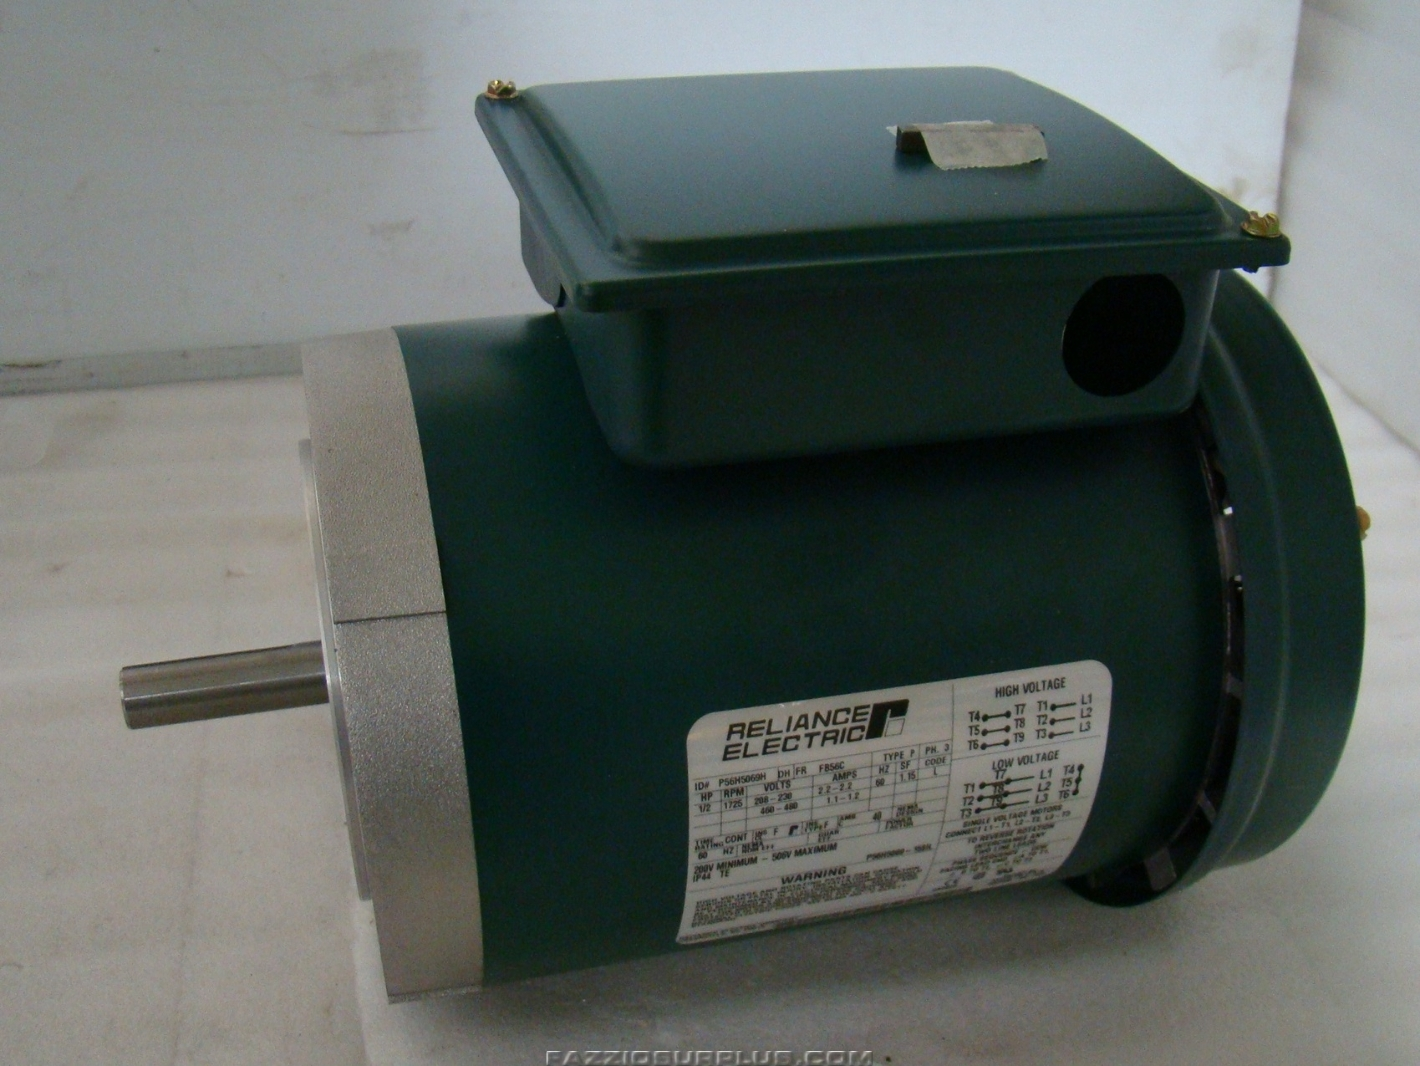 Reliance Motor Wire Diagram Motor Repalcement Parts And Diagram